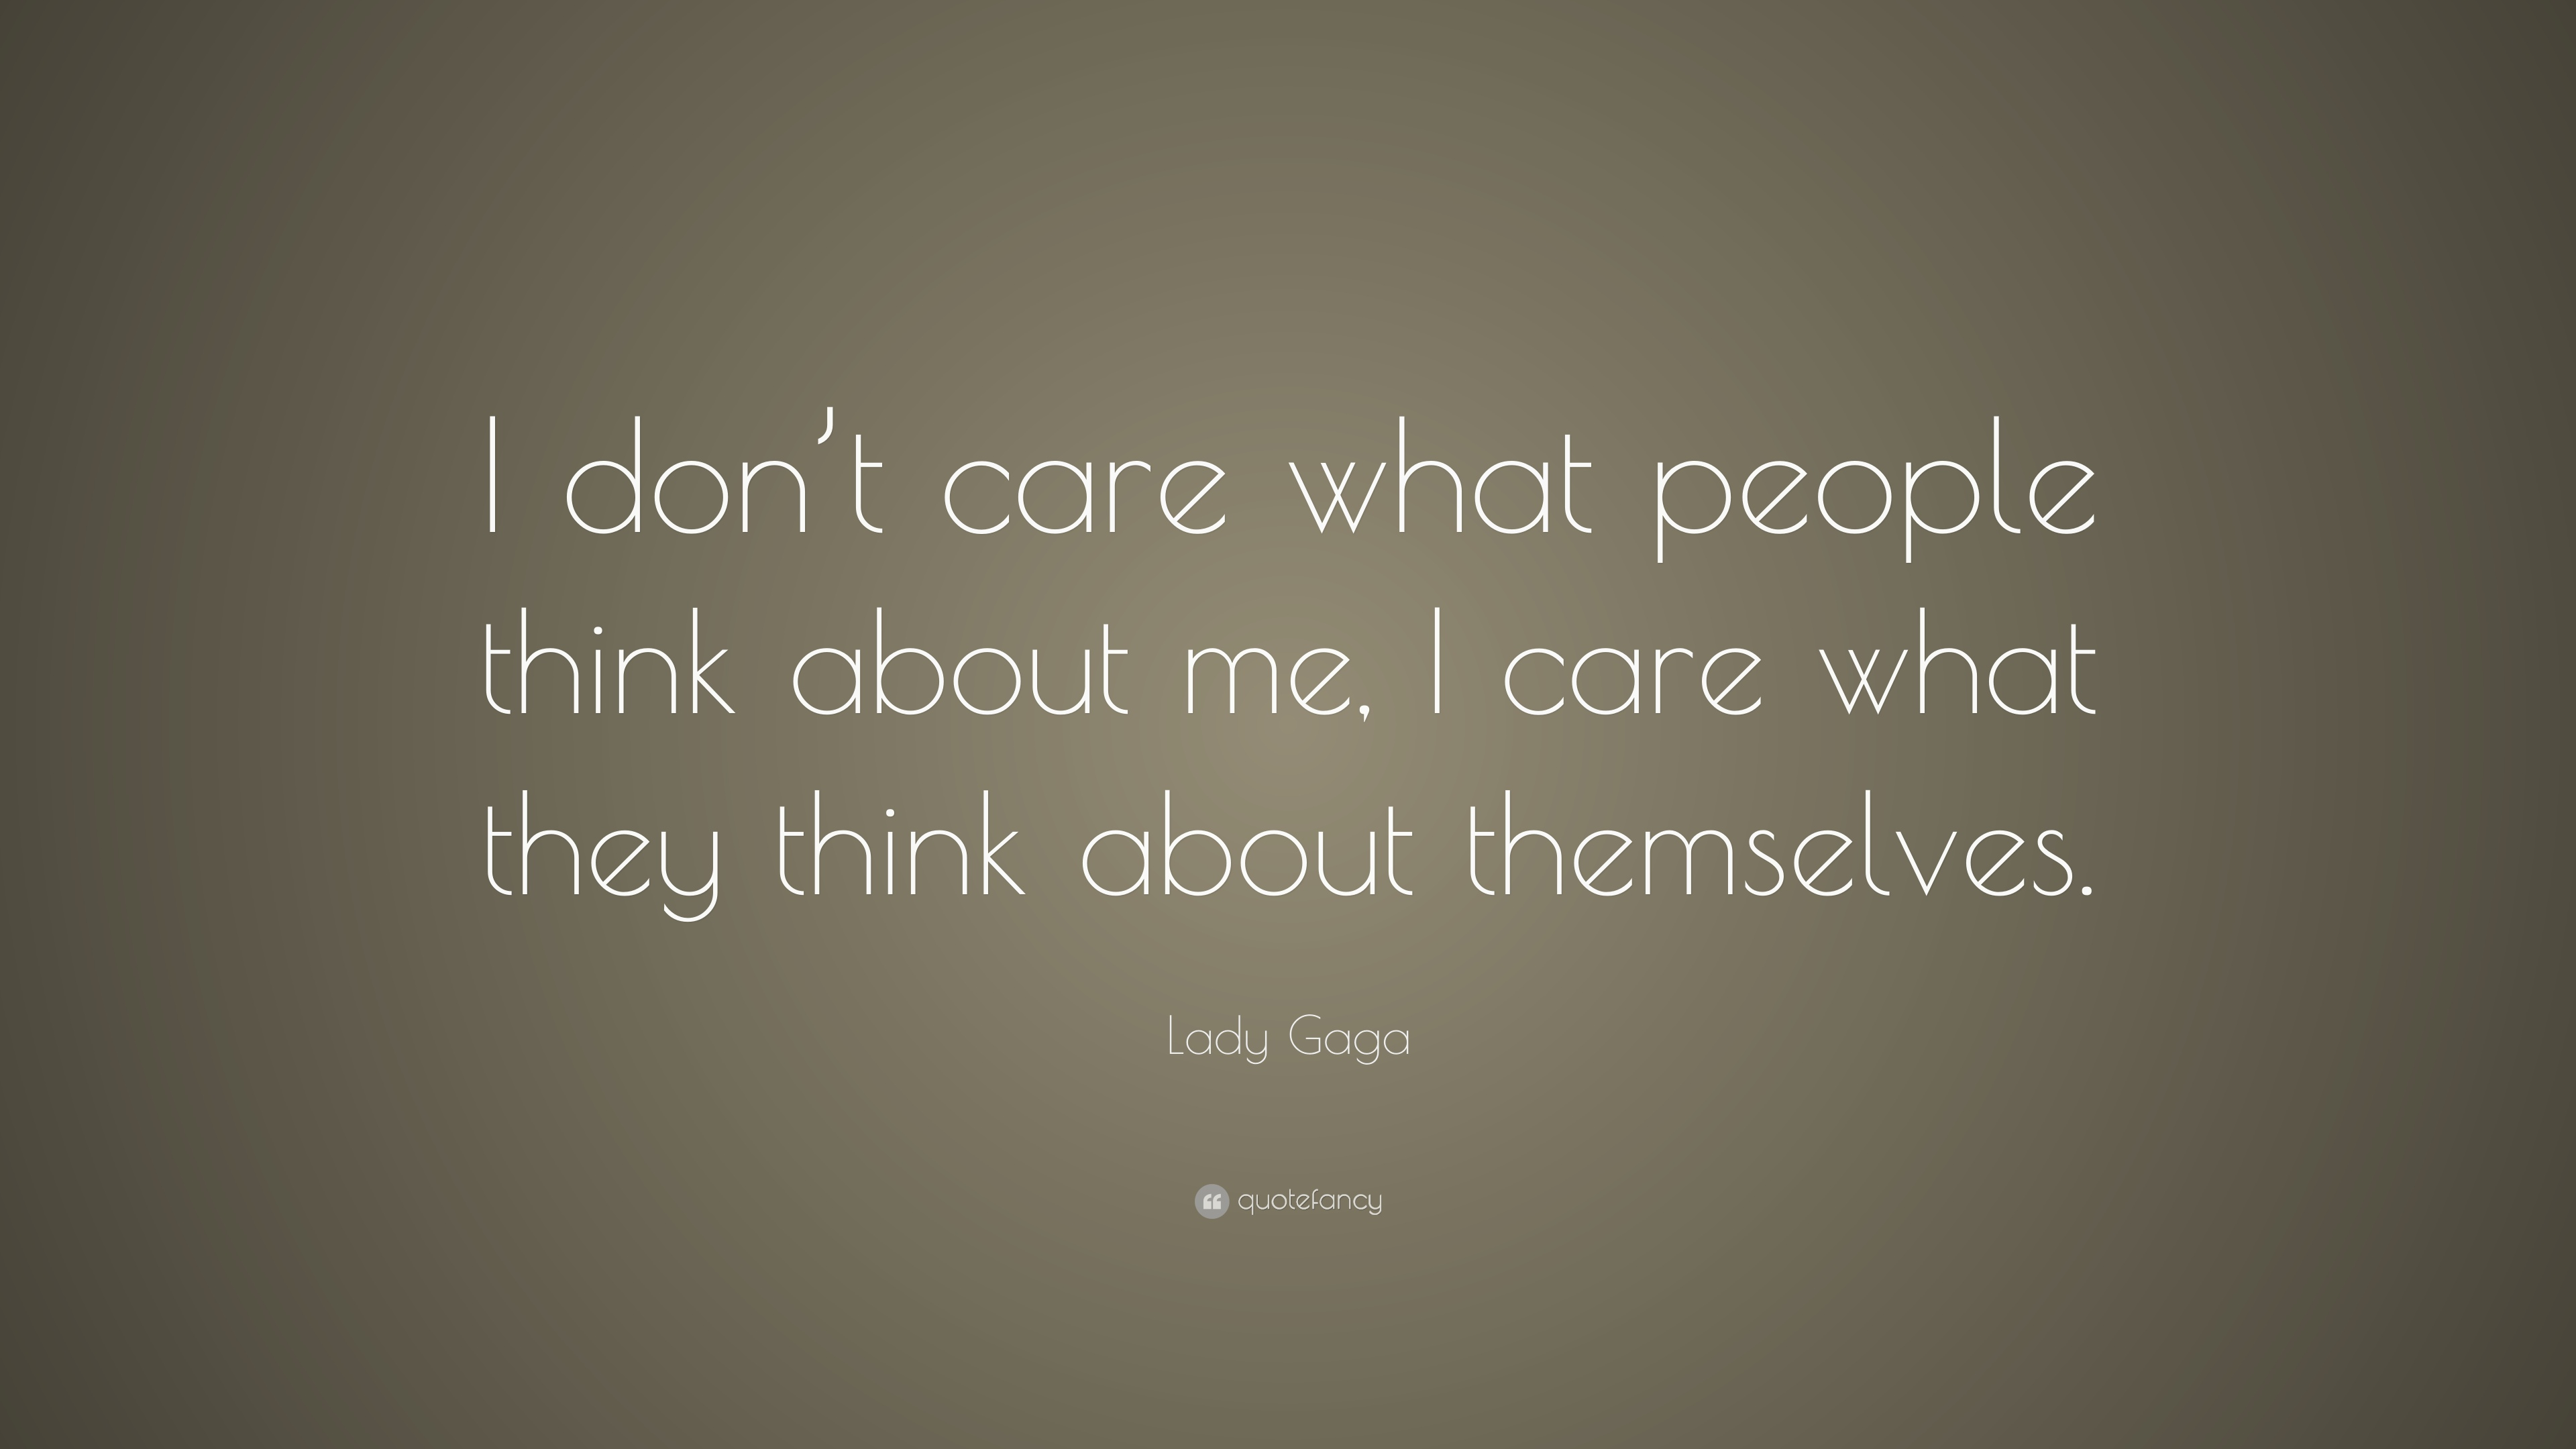 Merveilleux Lady Gaga Quote: U201cI Donu0027t Care What People Think About Me,